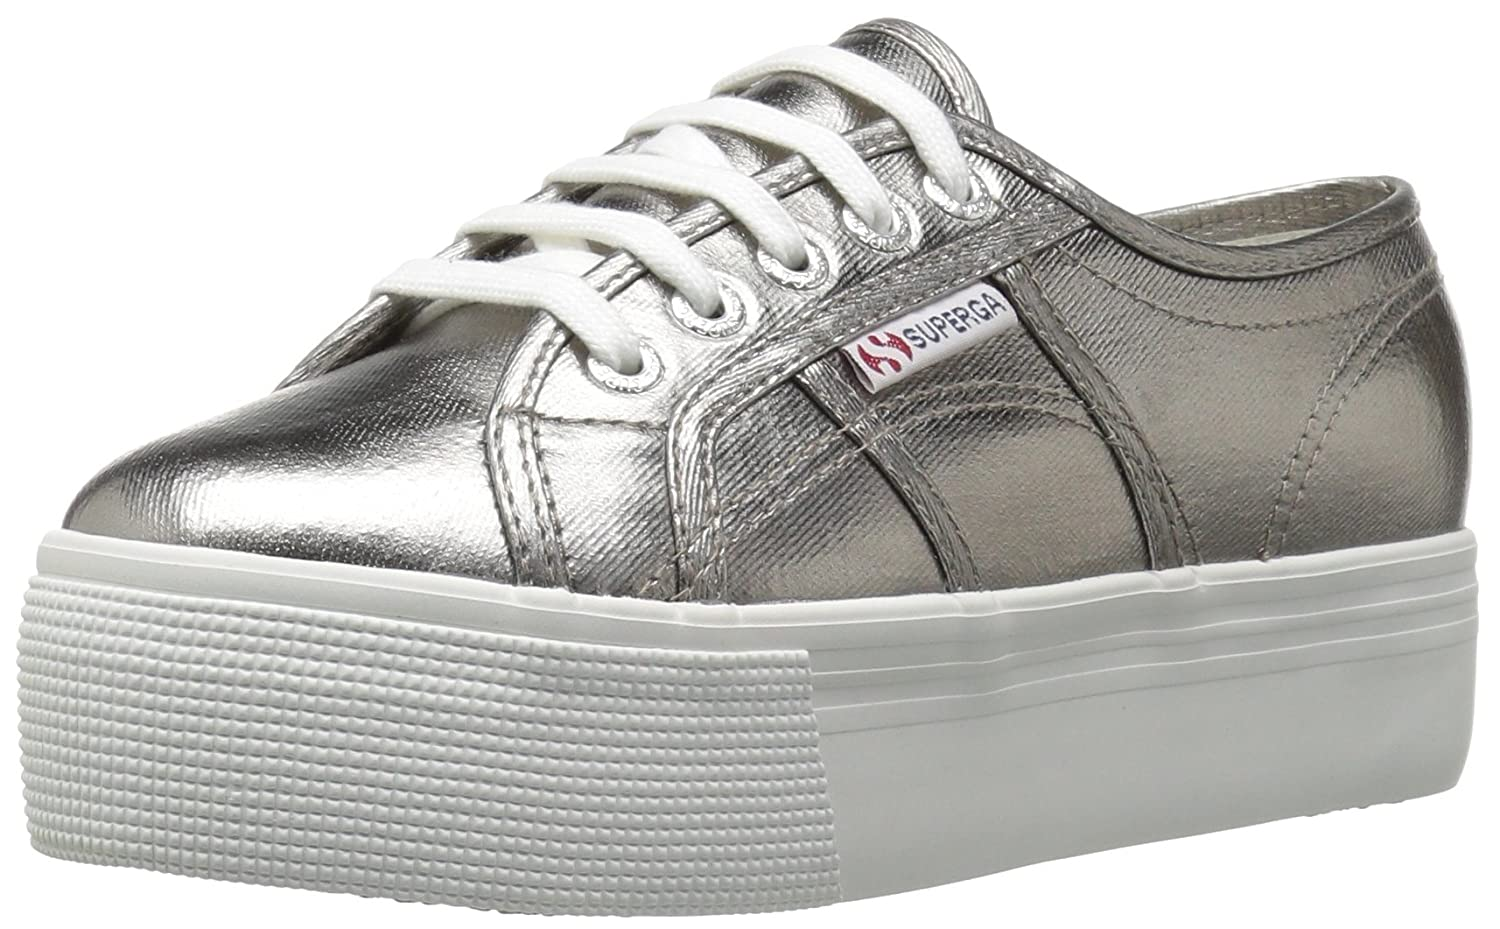 Superga Women's 2790 Cotmetu Fashion Sneaker B0718X3YG6 40 M EU / 9 B(M) US|Grey